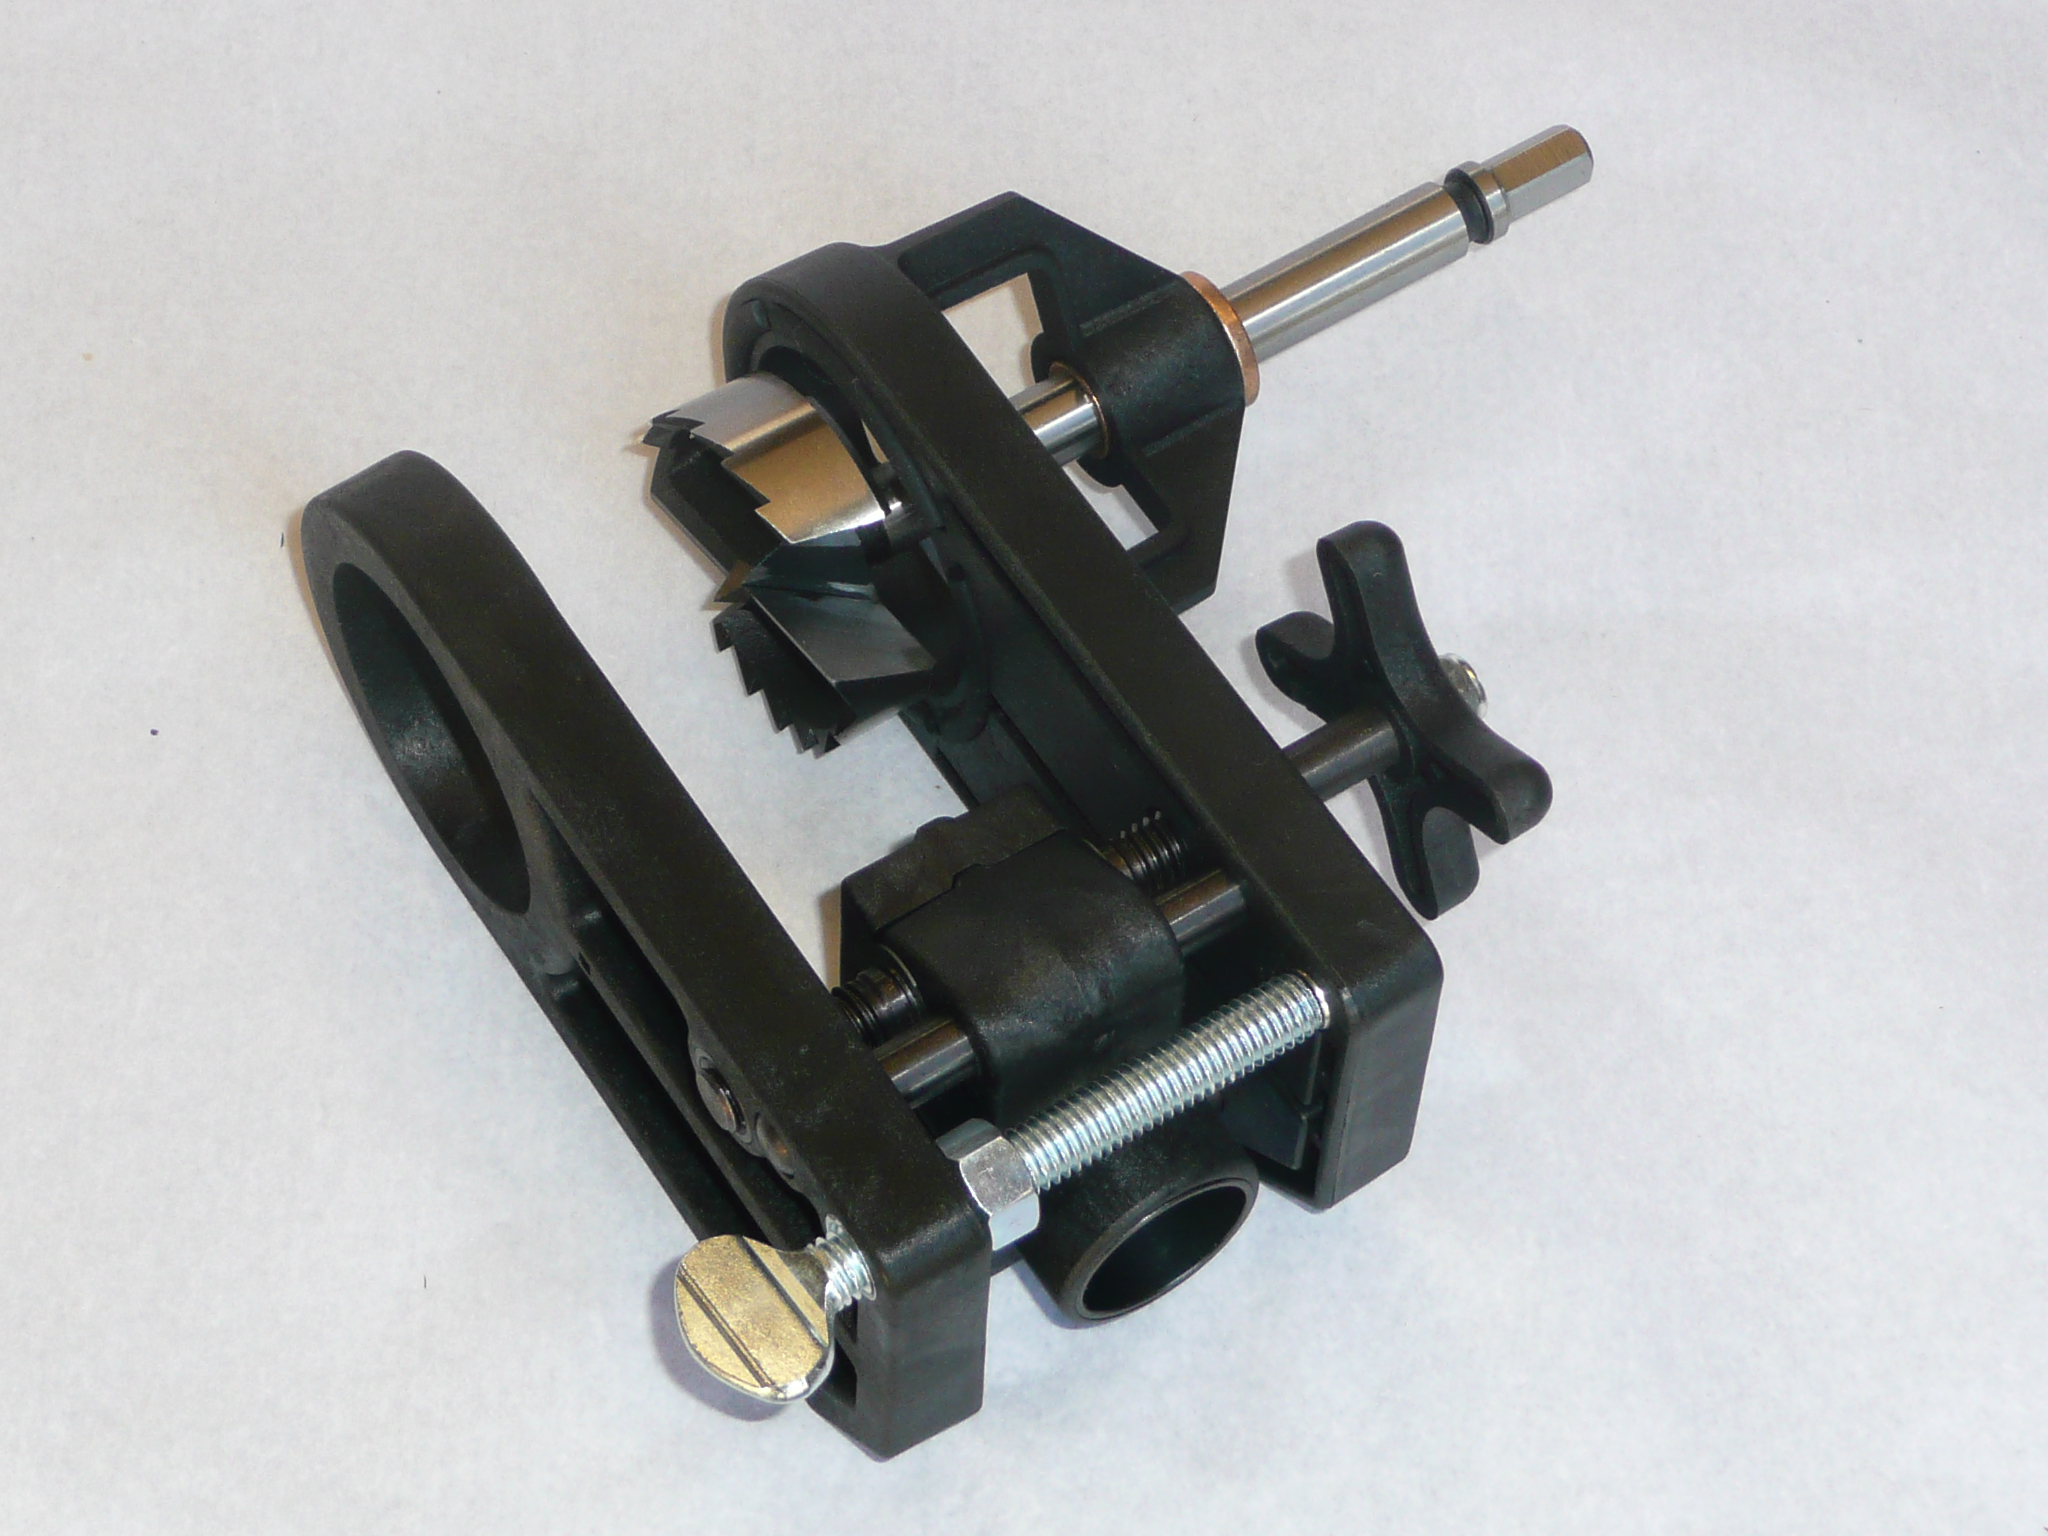 Drill Jig With Self Centering Screw, Side Bronze Guide Brushing, And  2-Position Backset